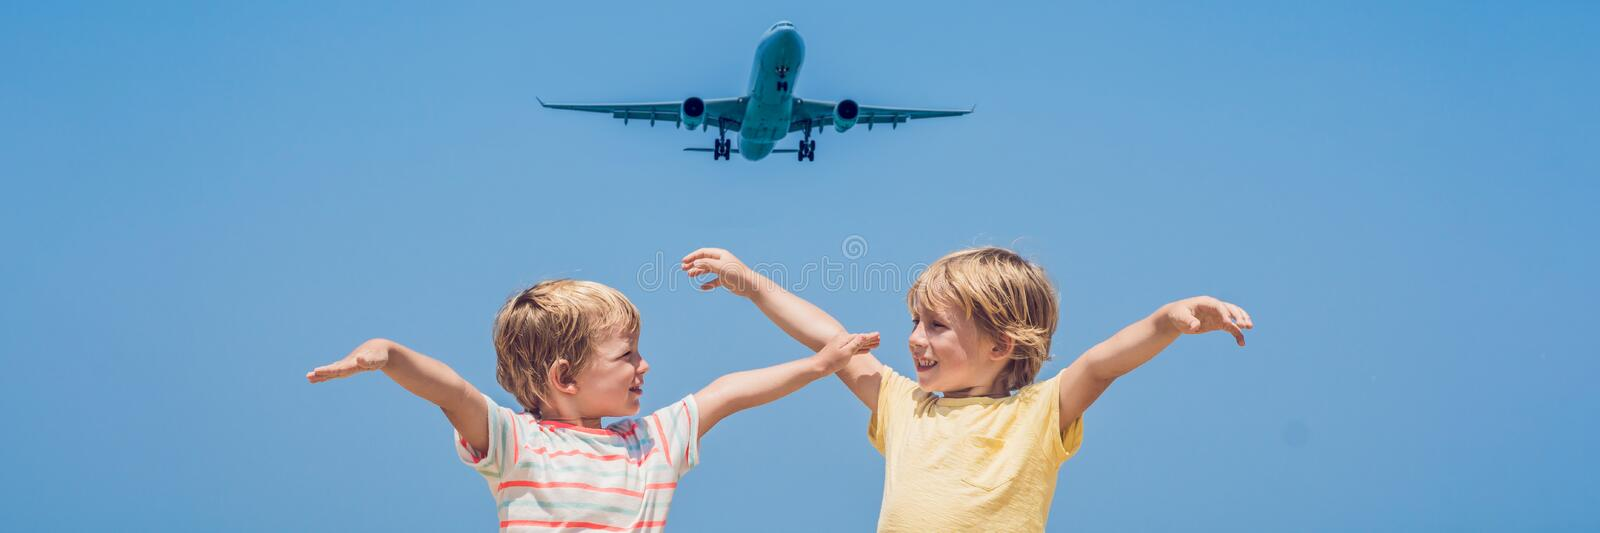 Two happy boys on the beach and a landing plane. Traveling with children concept BANNER, long format royalty free stock photo